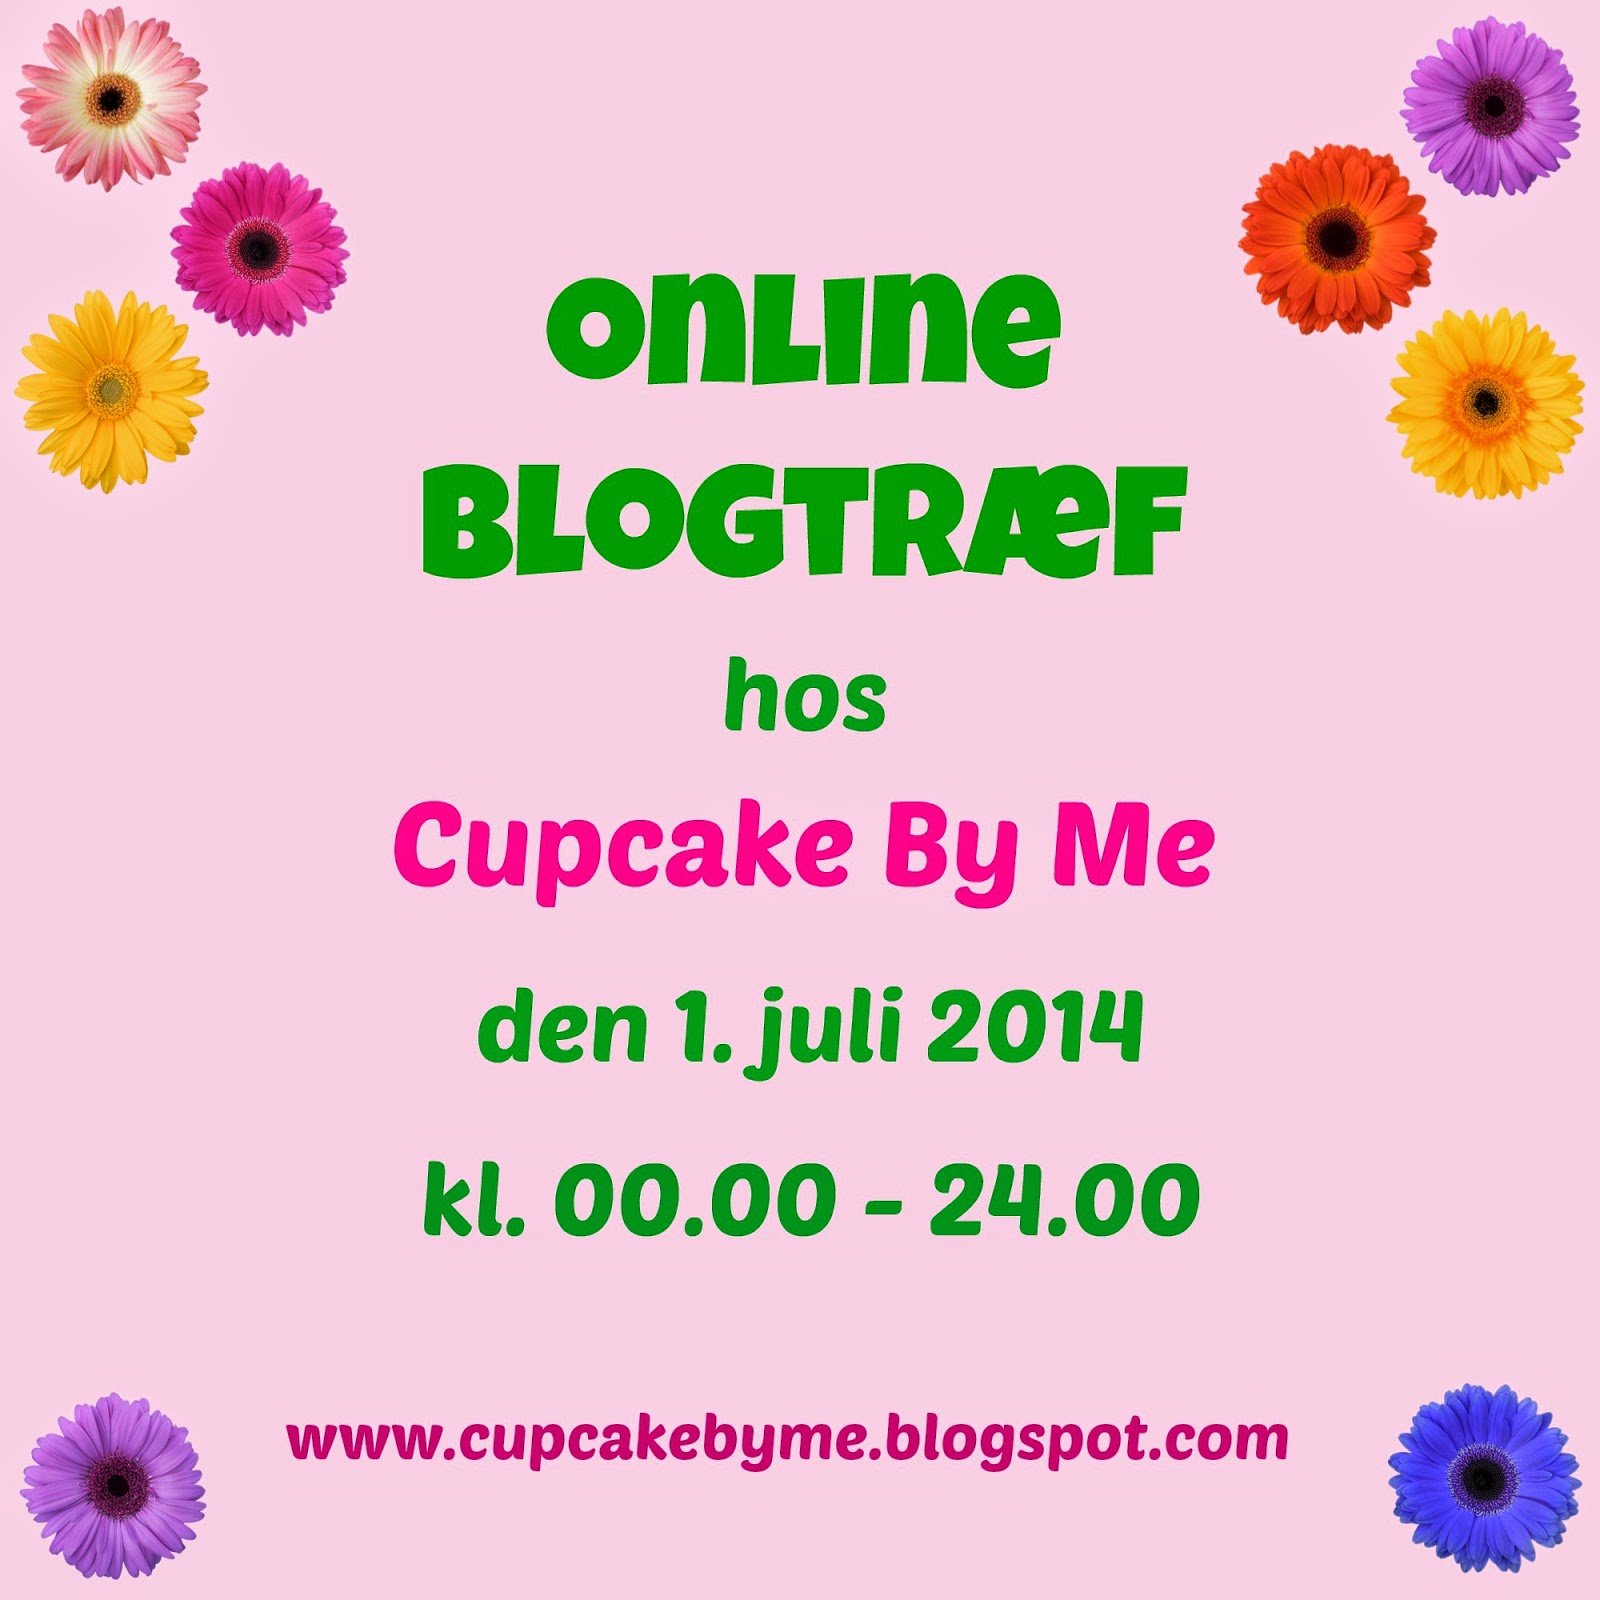 Cupcake By Me Blog ©: Online blogtræf